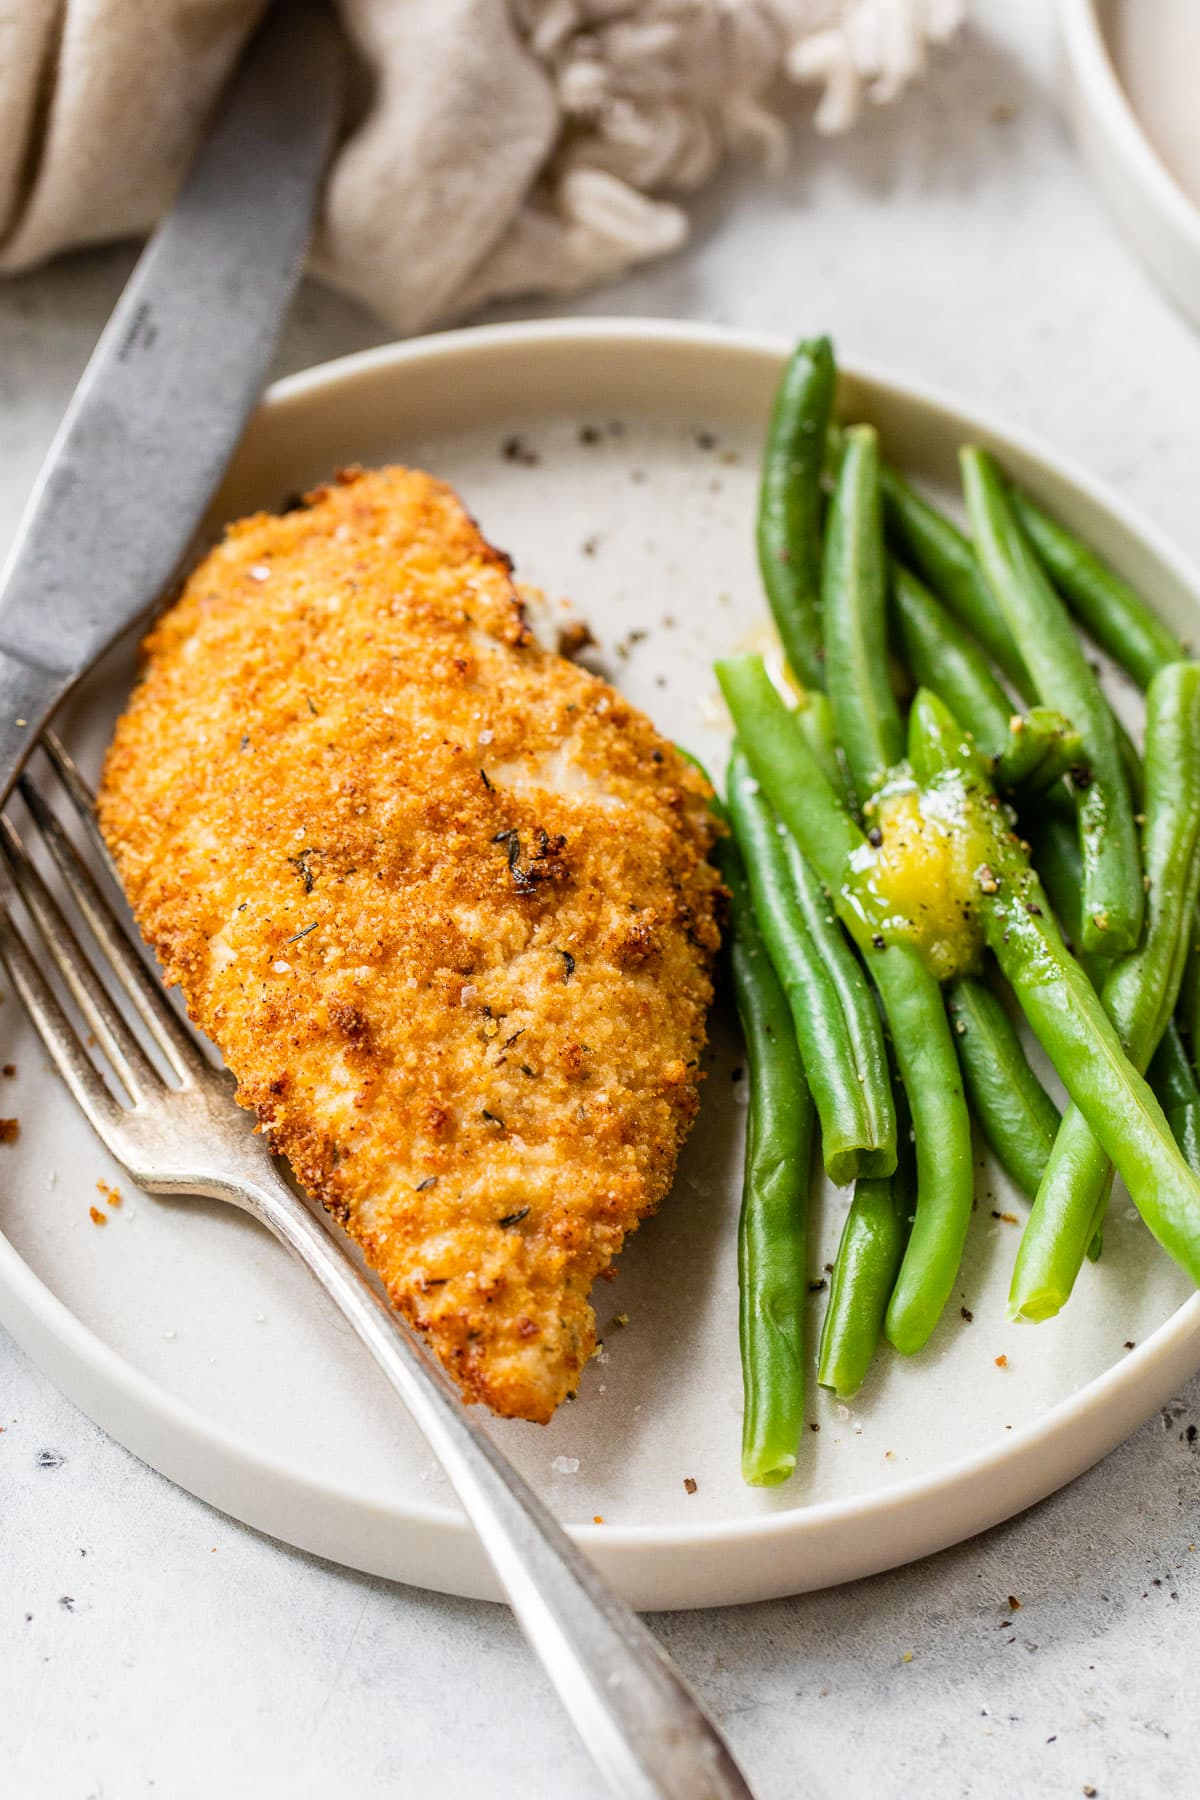 no flour fried chicken breast from the air fryer on a plate